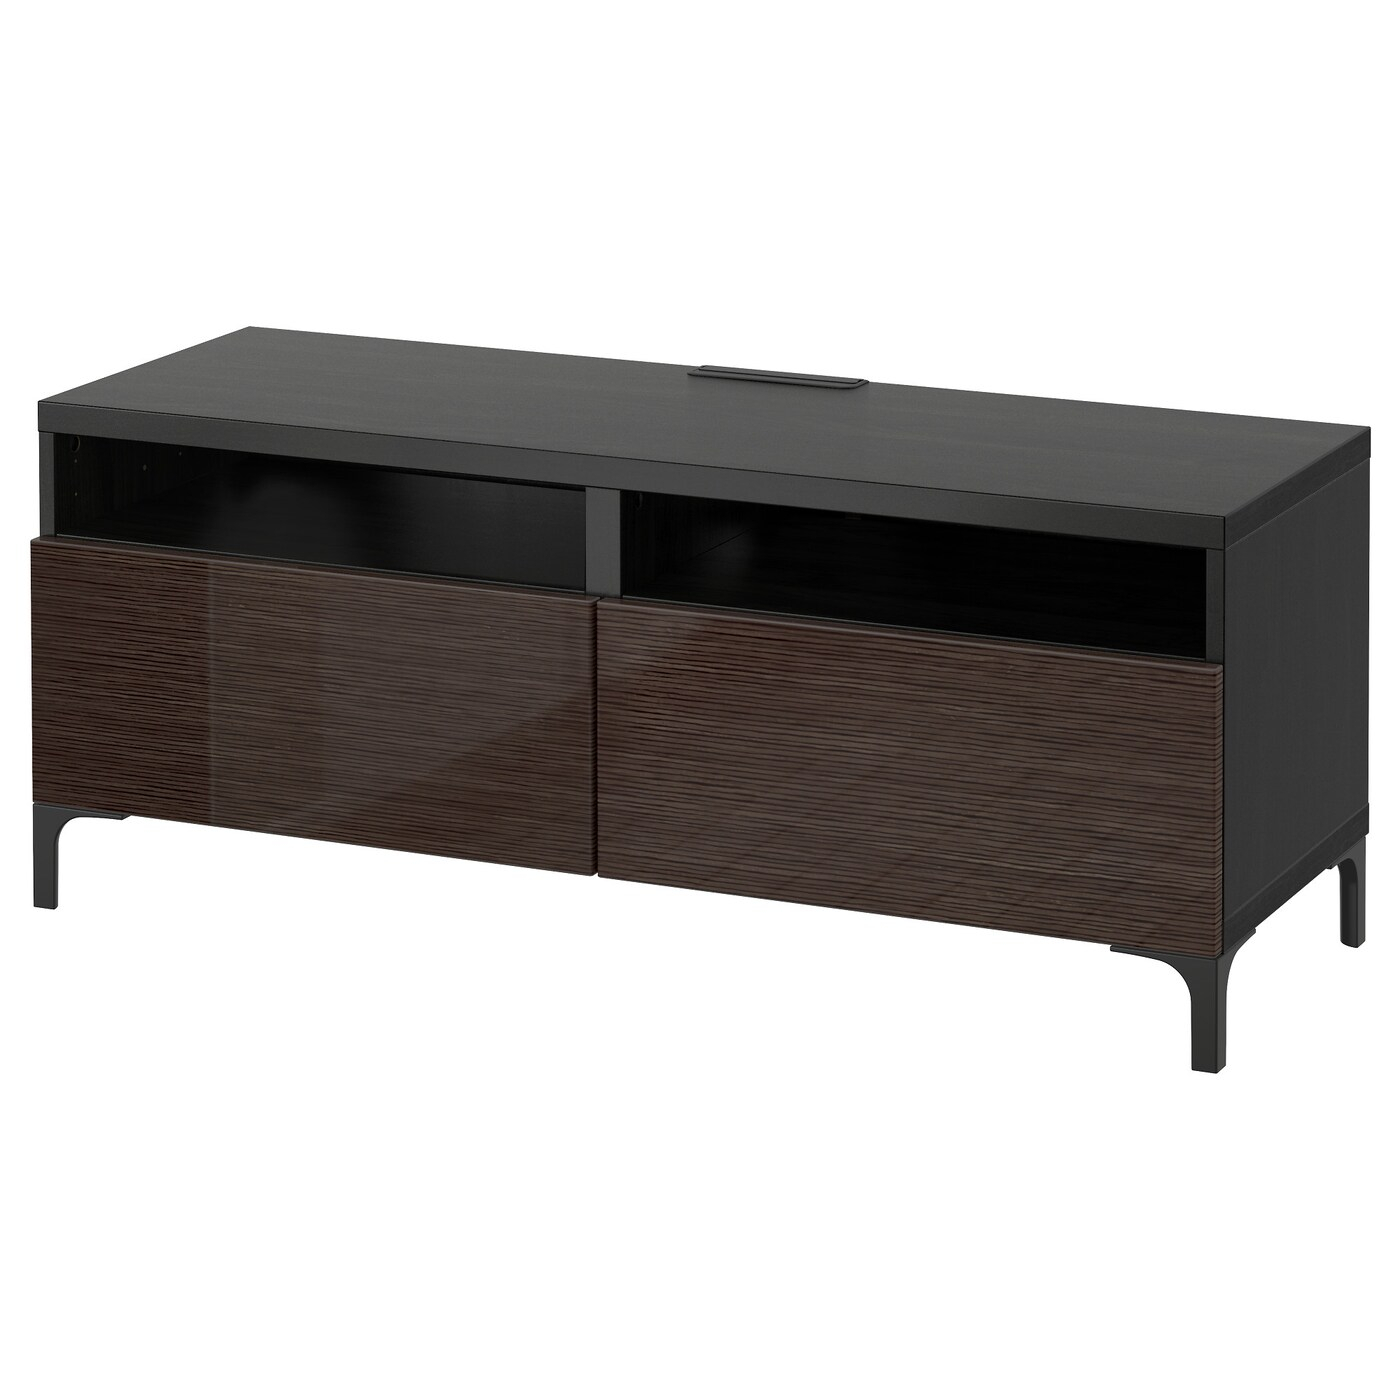 Bestå Tv Bench With Drawers – Black Brown/selsviken High Intended For Black Gloss Tv Bench (View 2 of 15)